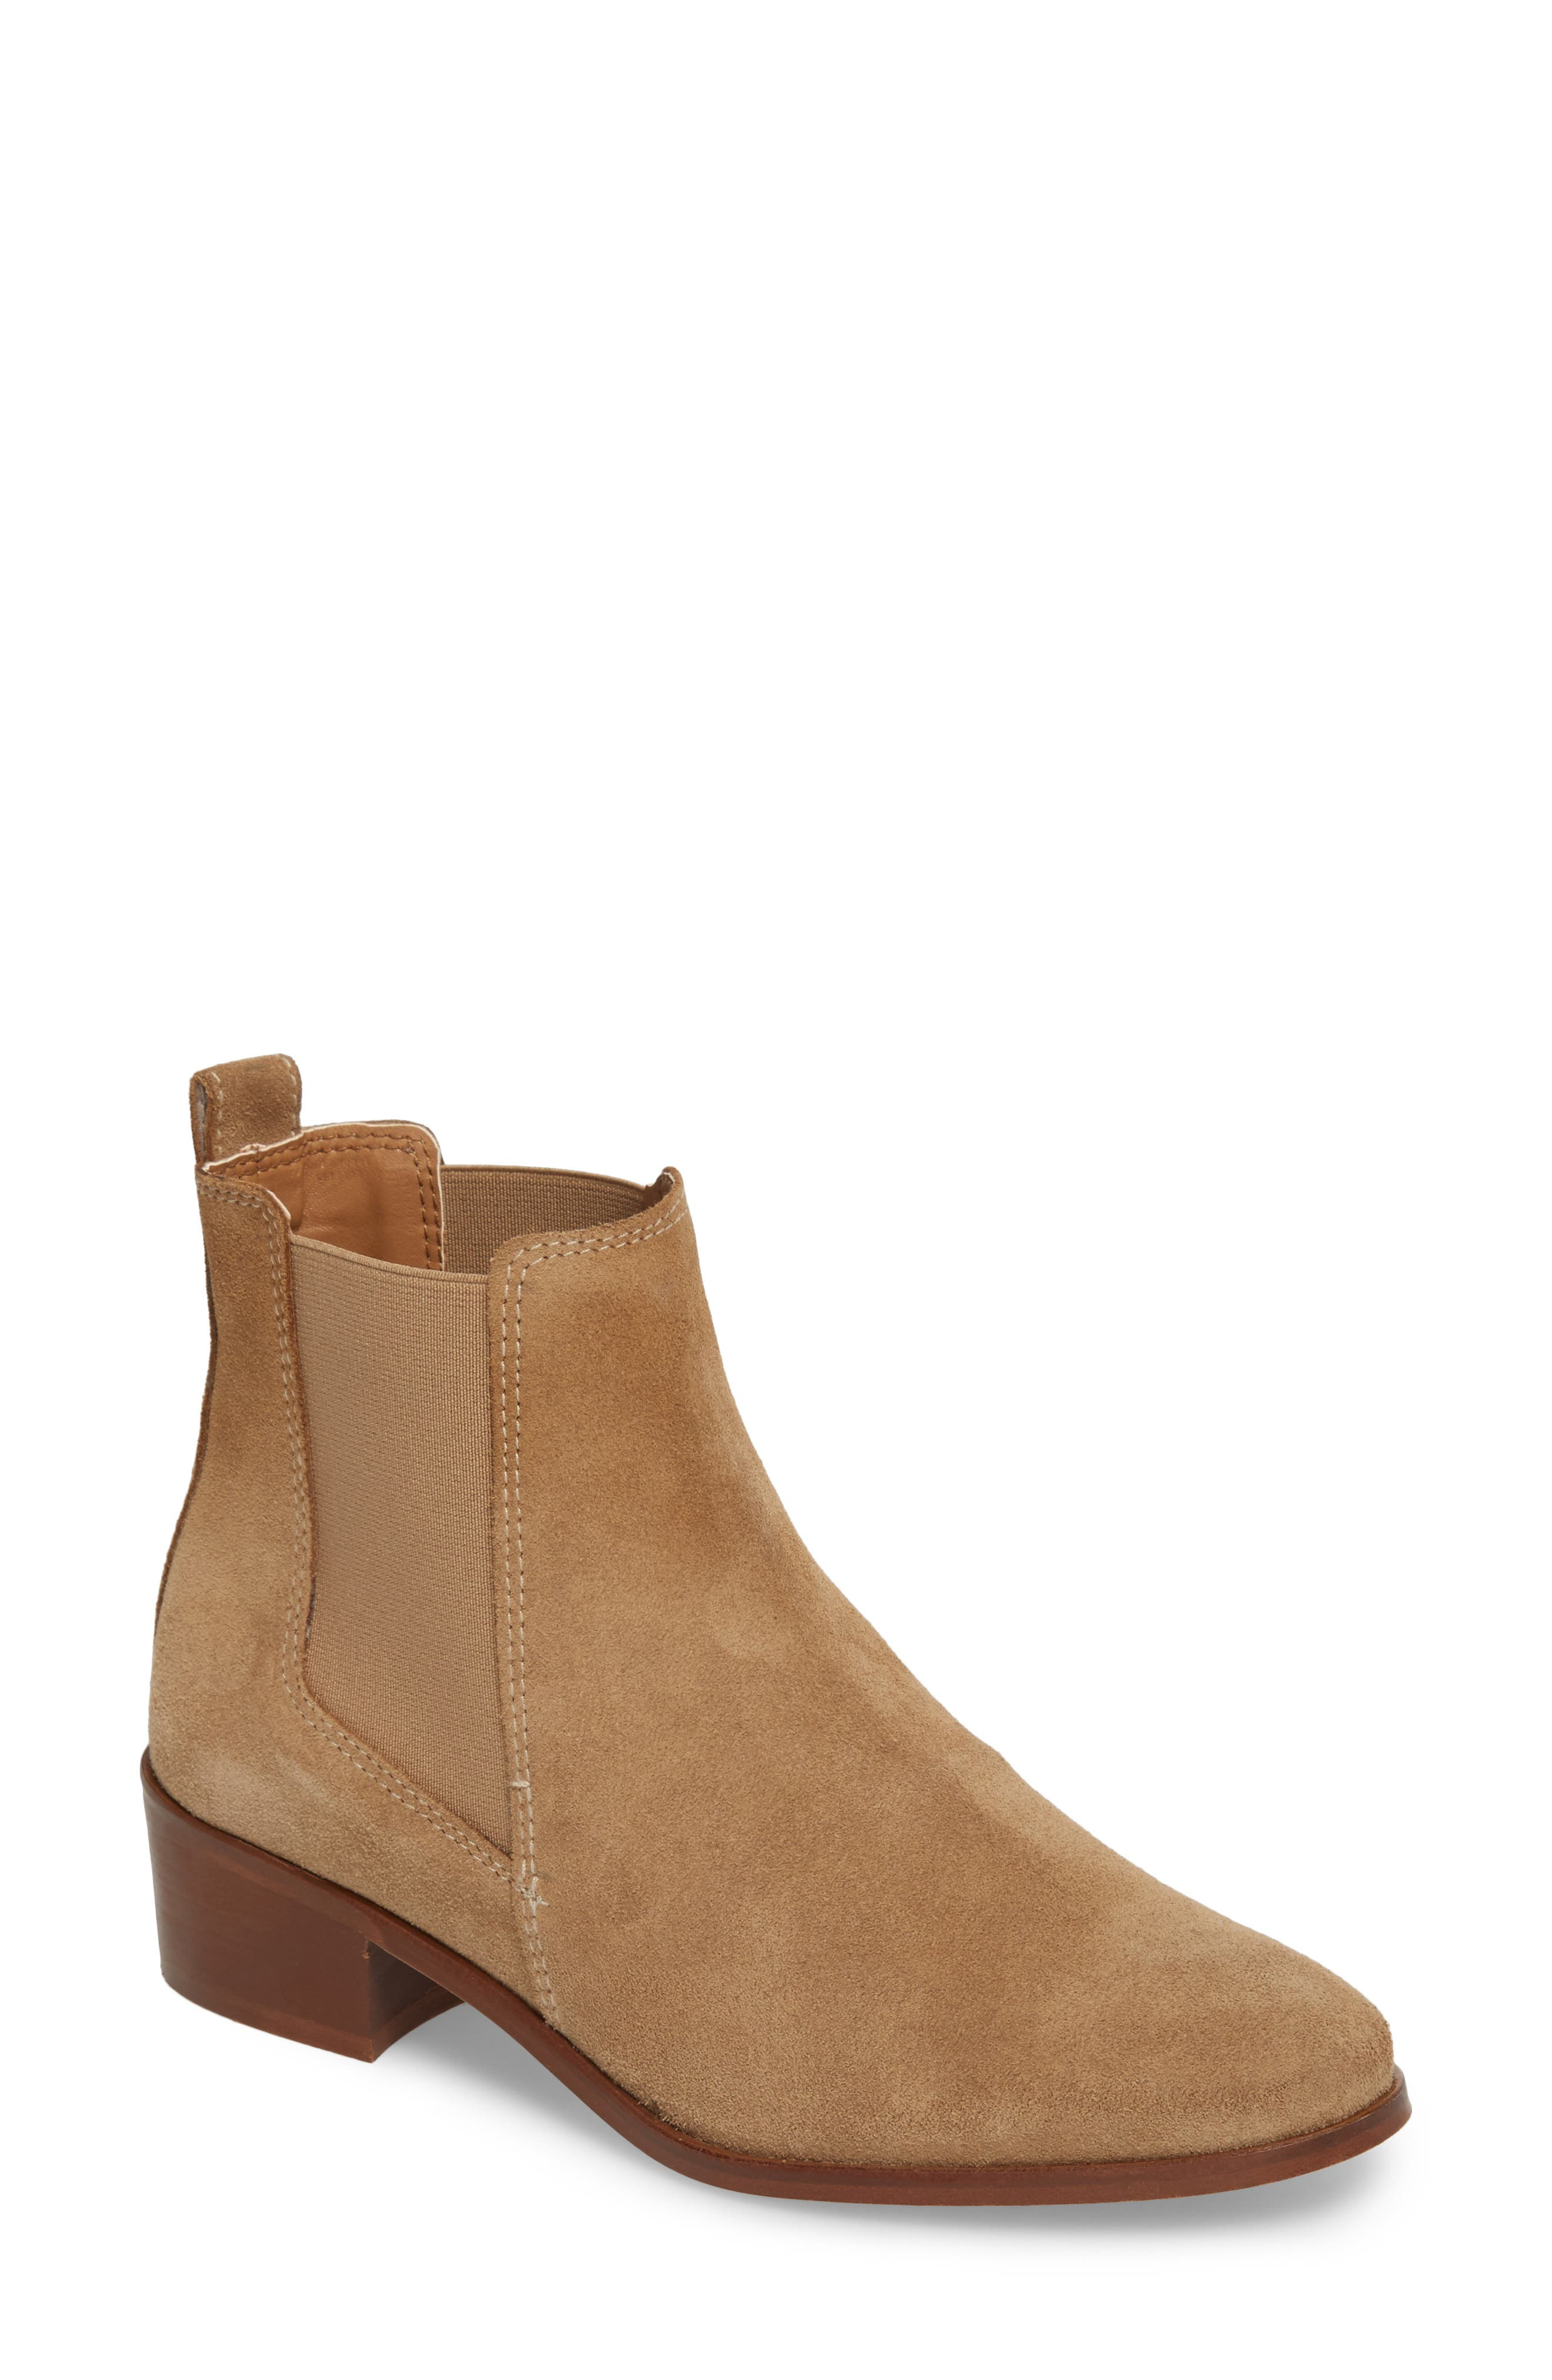 Dover Chelsea Bootie,                             Main thumbnail 1, color,                             Taupe Suede